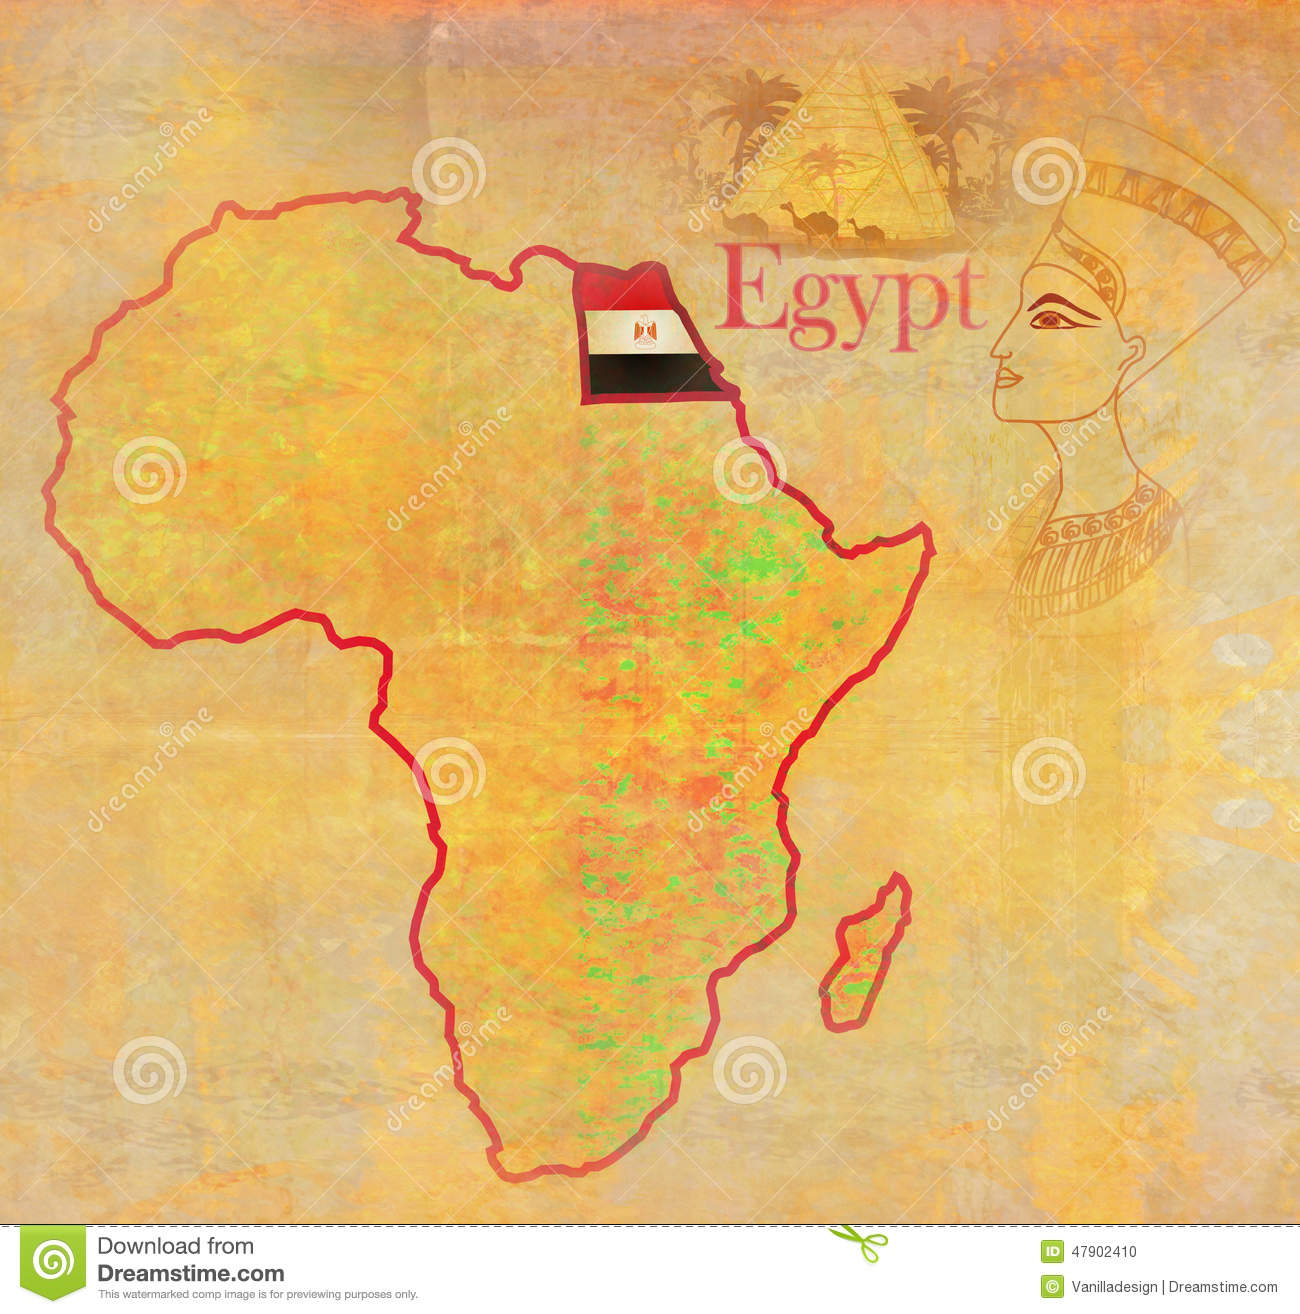 Egypt on actual vintage political map of africa stock illustration download egypt on actual vintage political map of africa stock illustration illustration of abstract ccuart Images